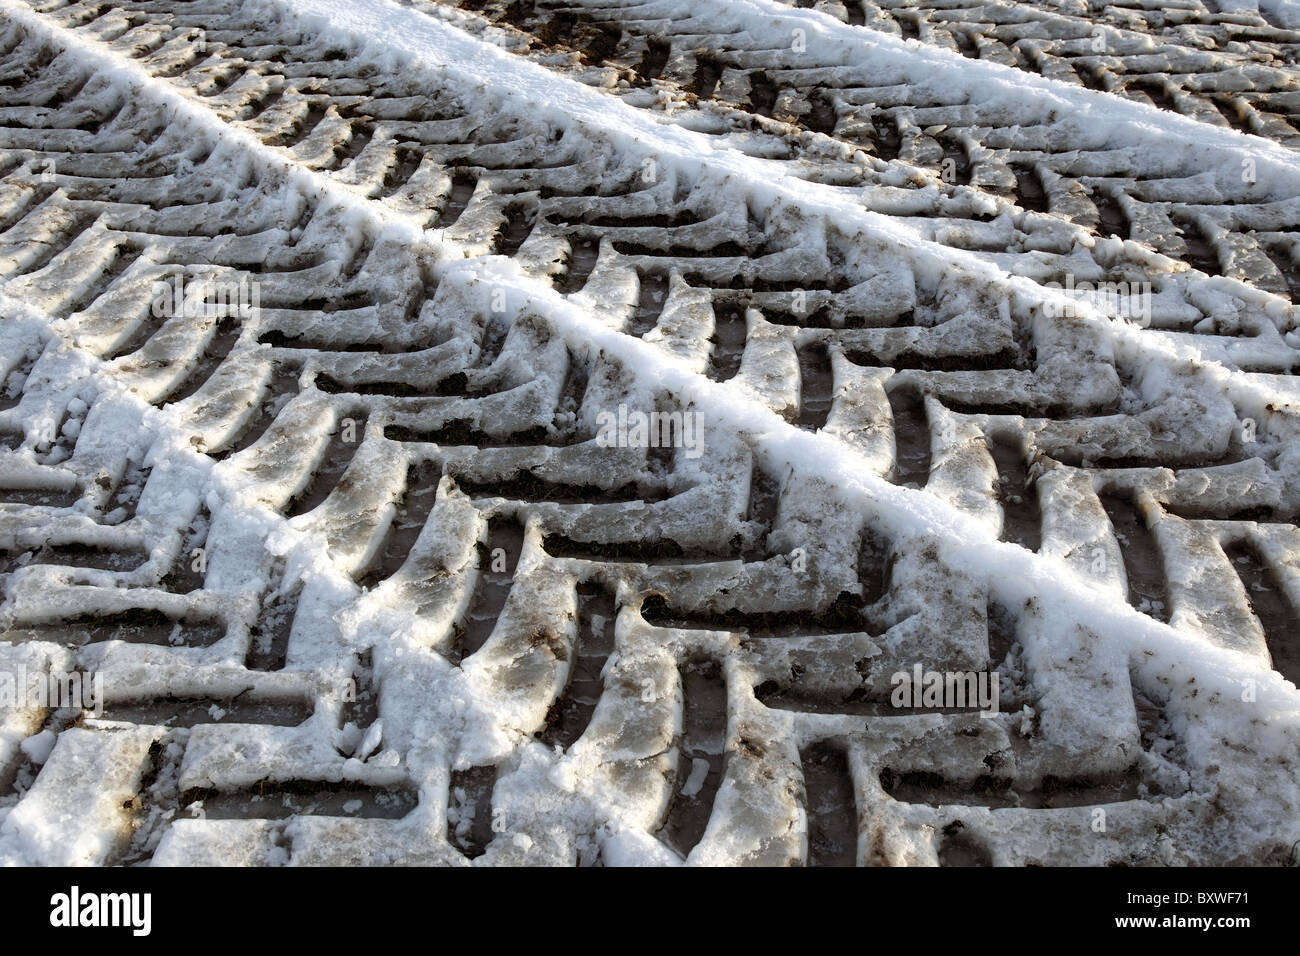 Tyre tracks in the snow and ice - Stock Image